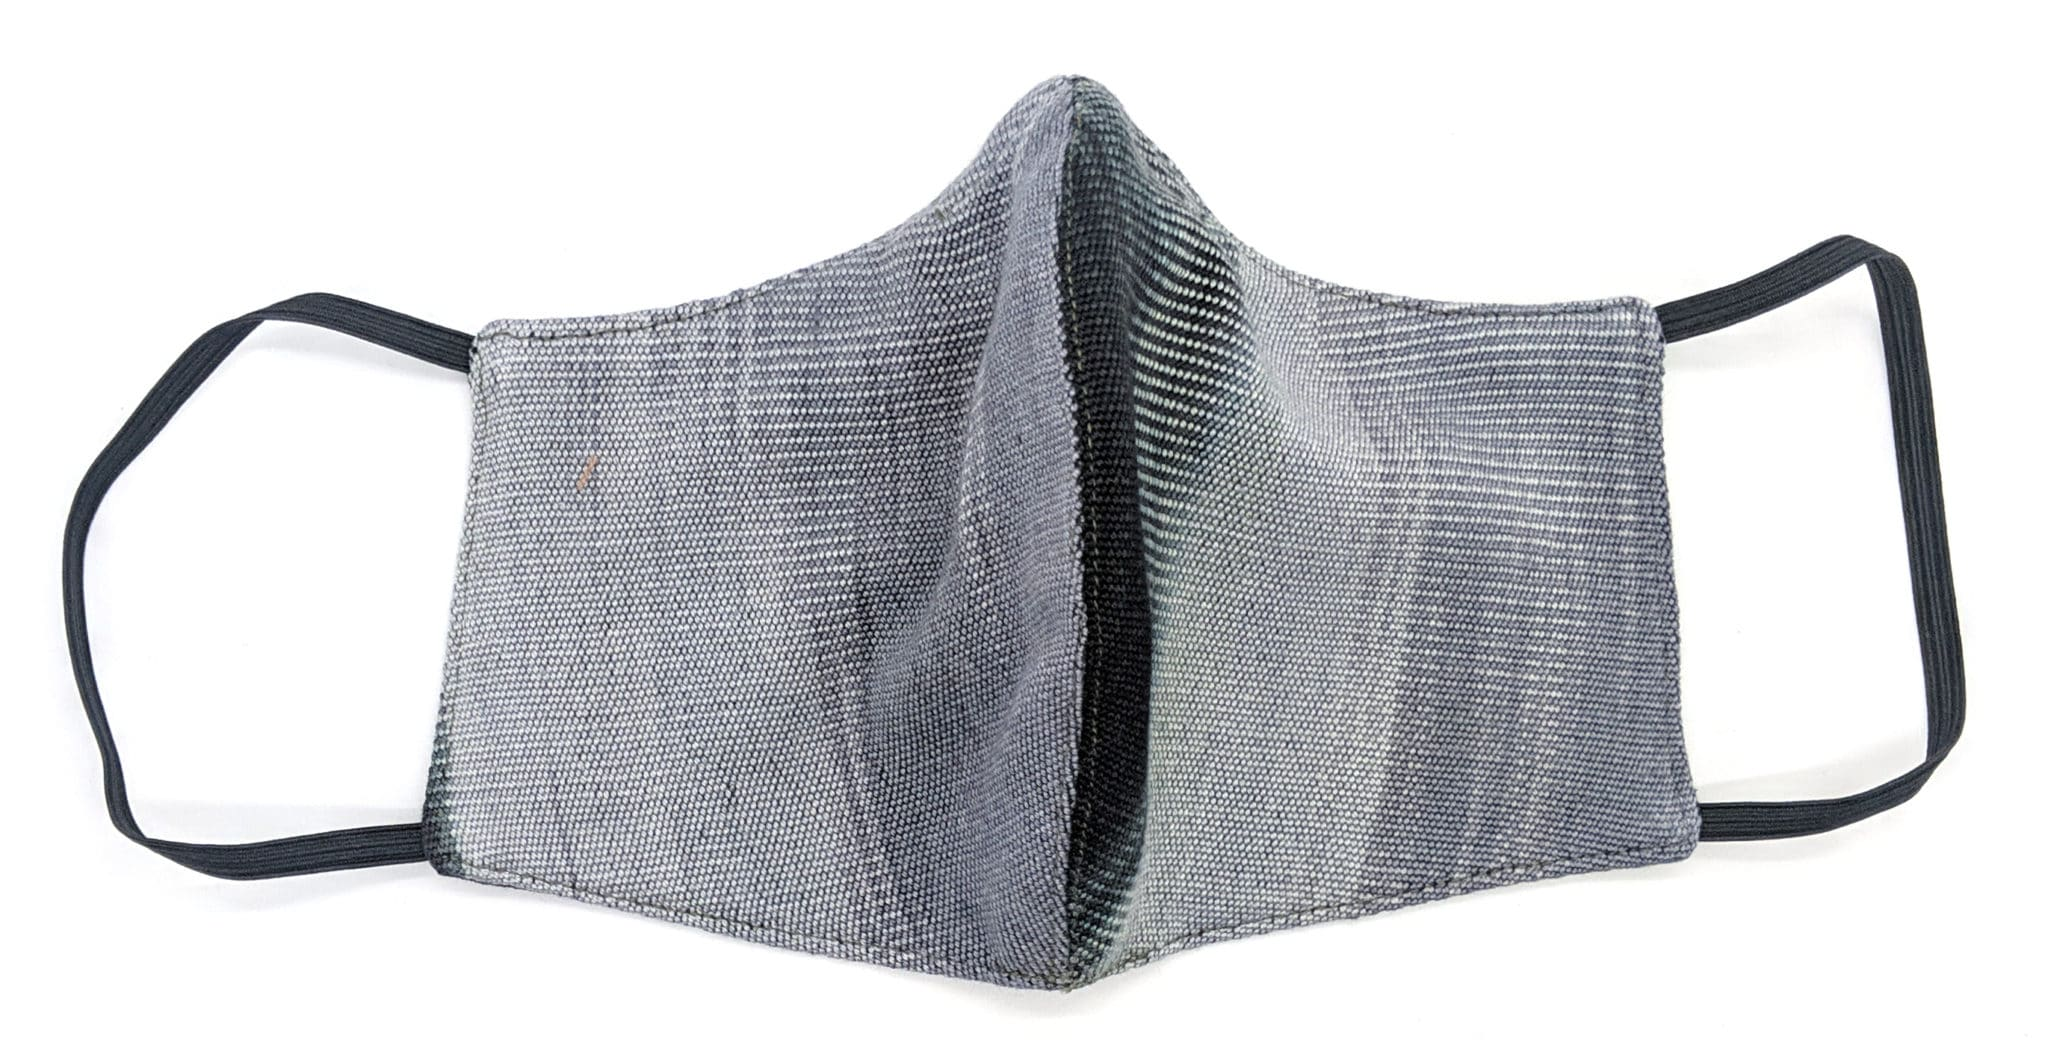 Handwoven Lightweight Bamboo Face Mask with Metal at Bridge of Nose - Black, Gray, Beige